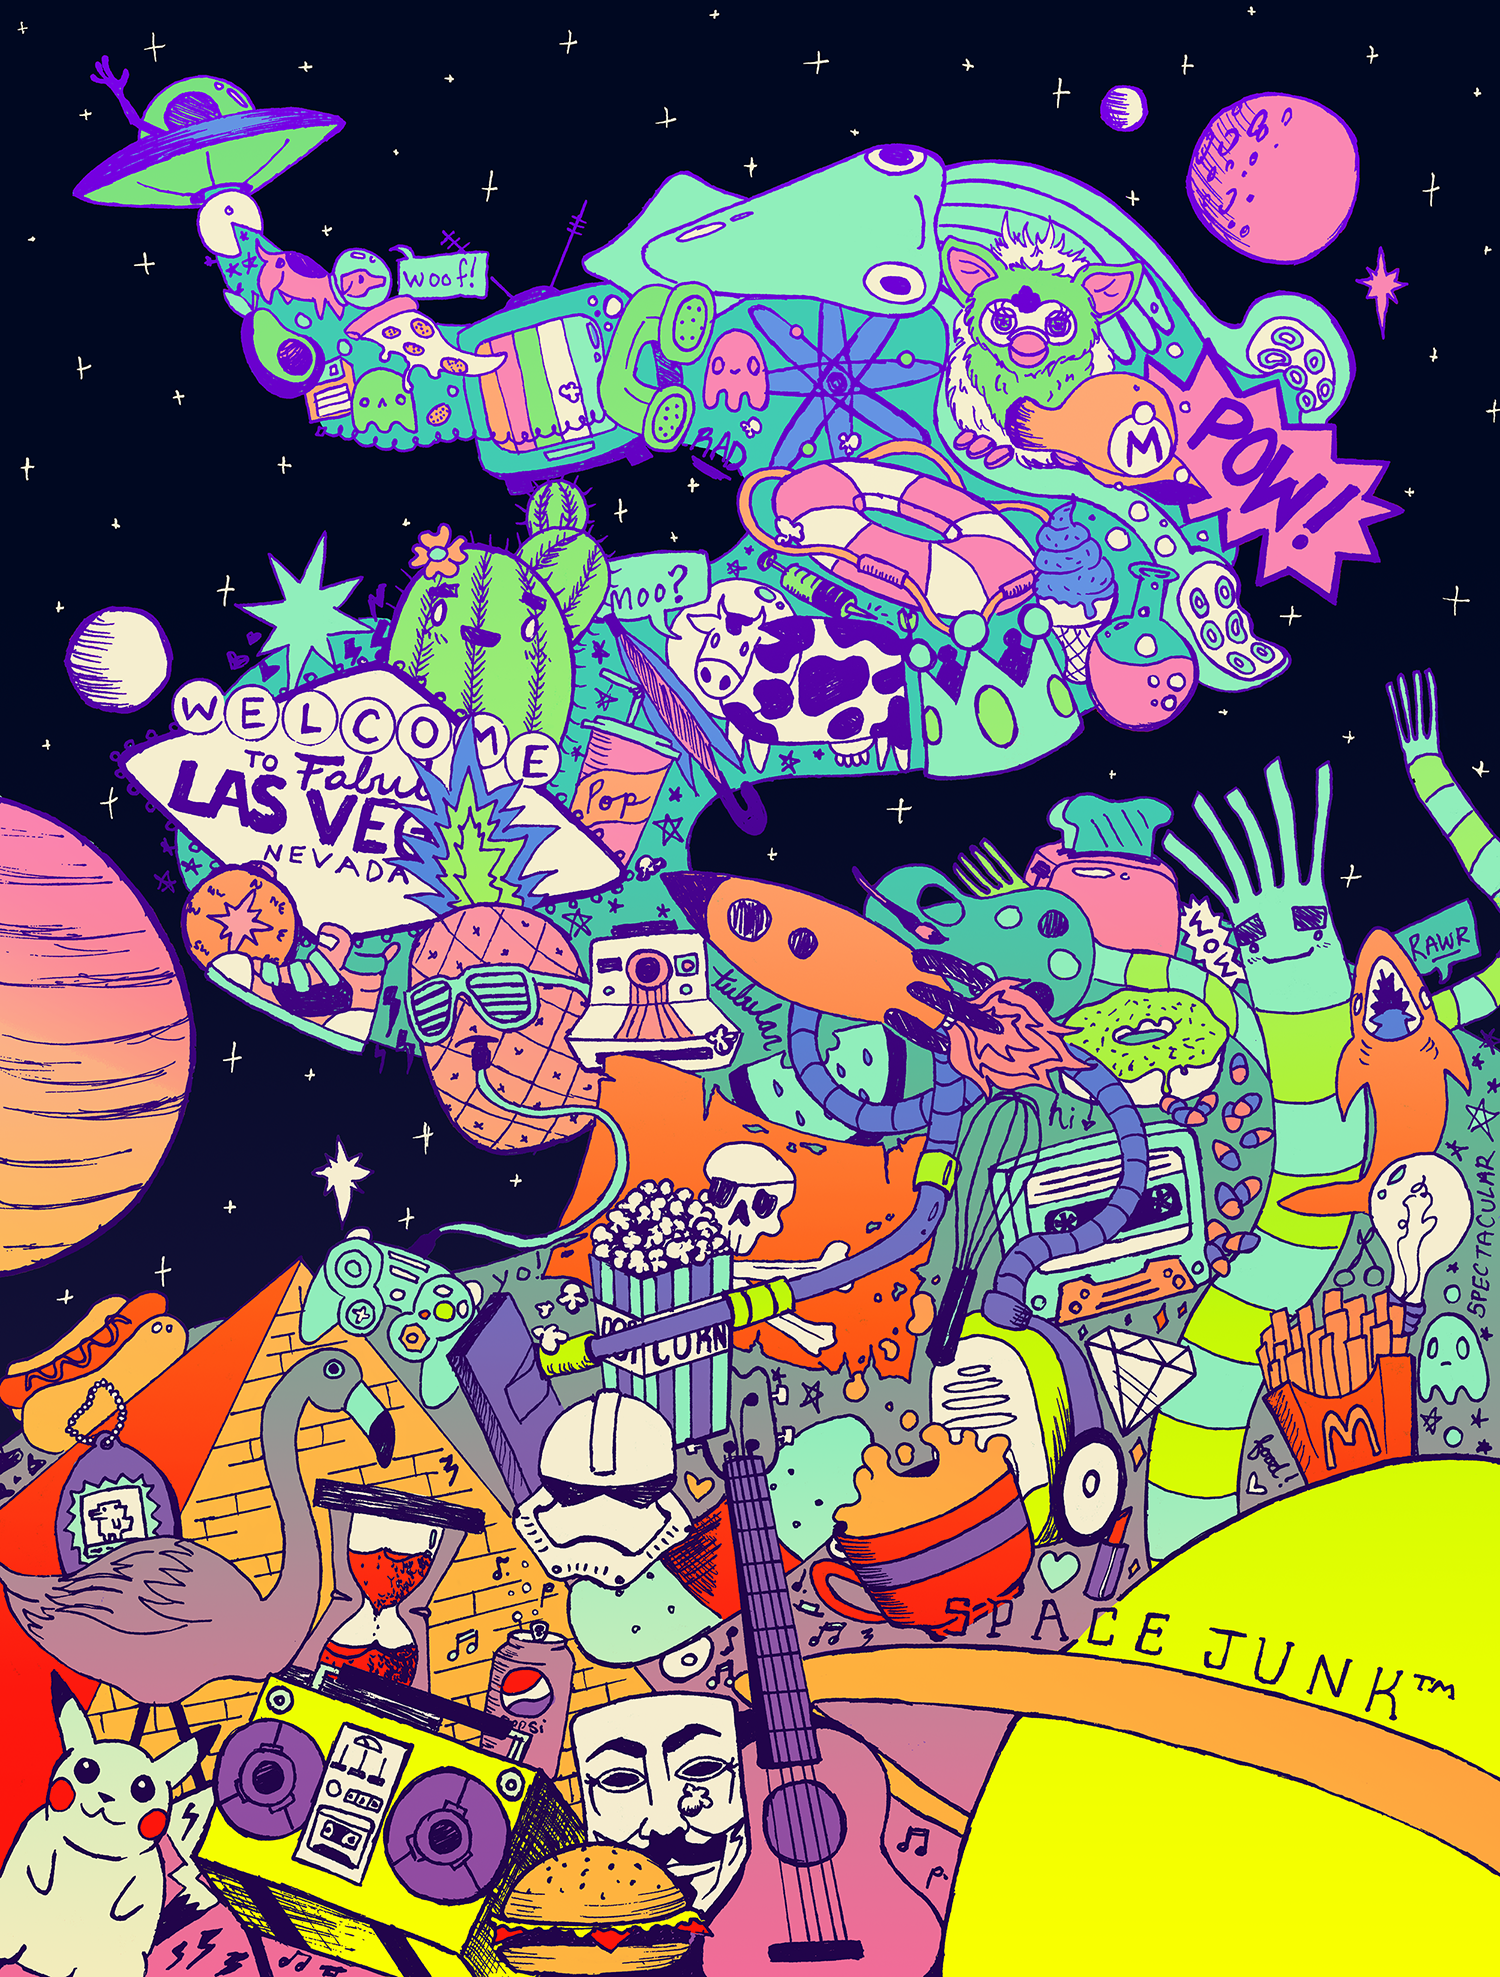 space junk tm full color file 1500px.png